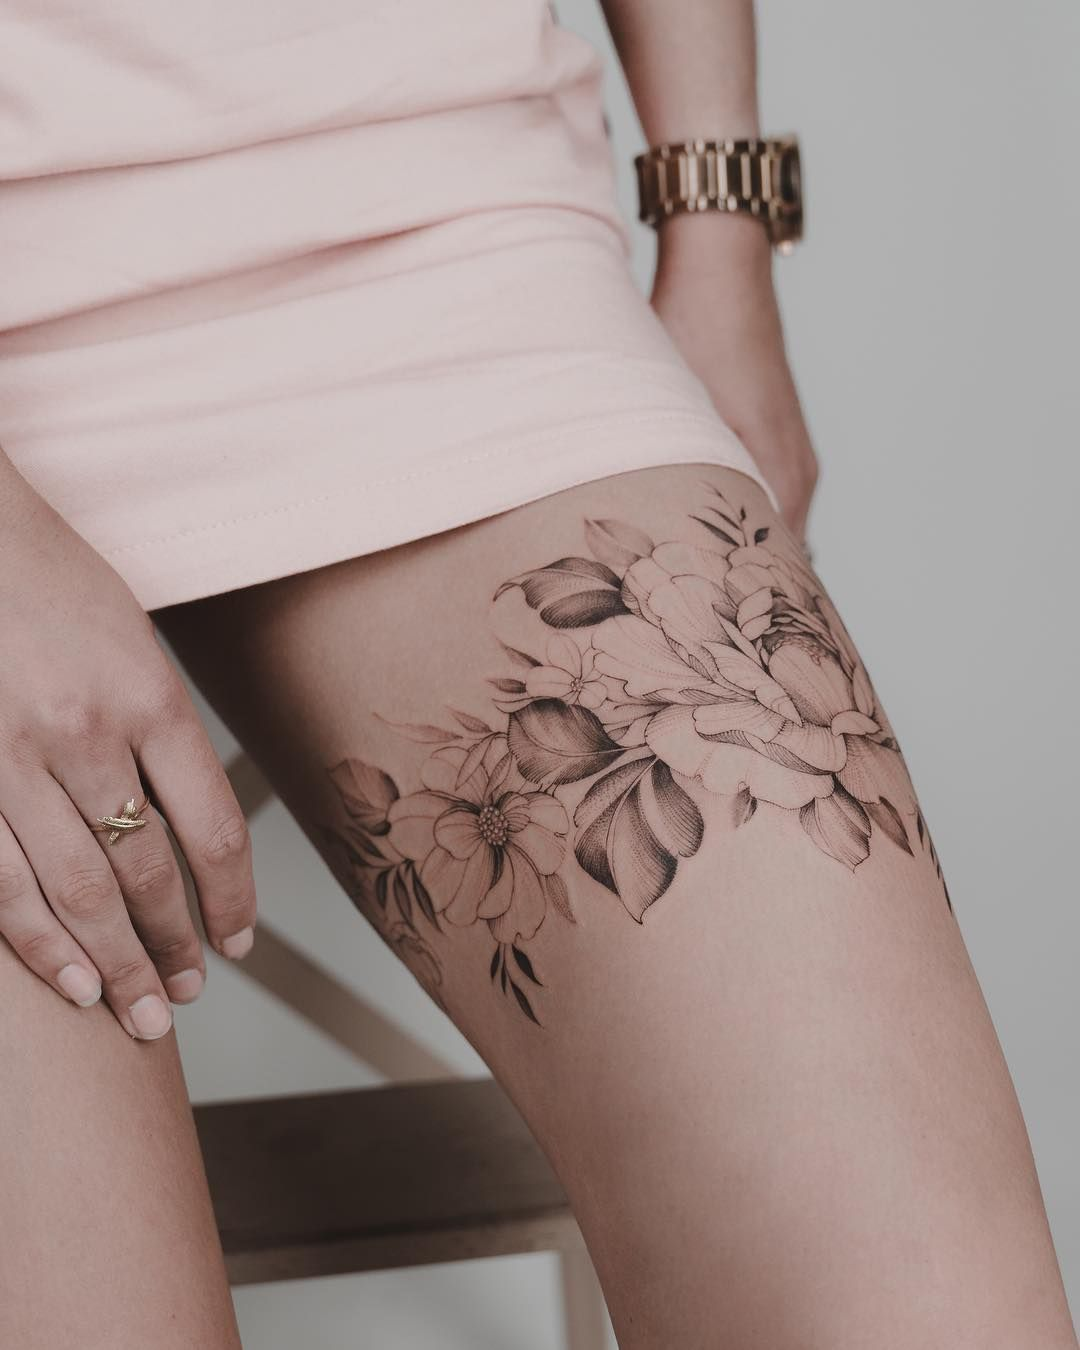 """Photo of Tritoan Ly on Instagram: """"Floral thigh band. Thanks for your trust friend 🙏🏼🌸🌿 """""""